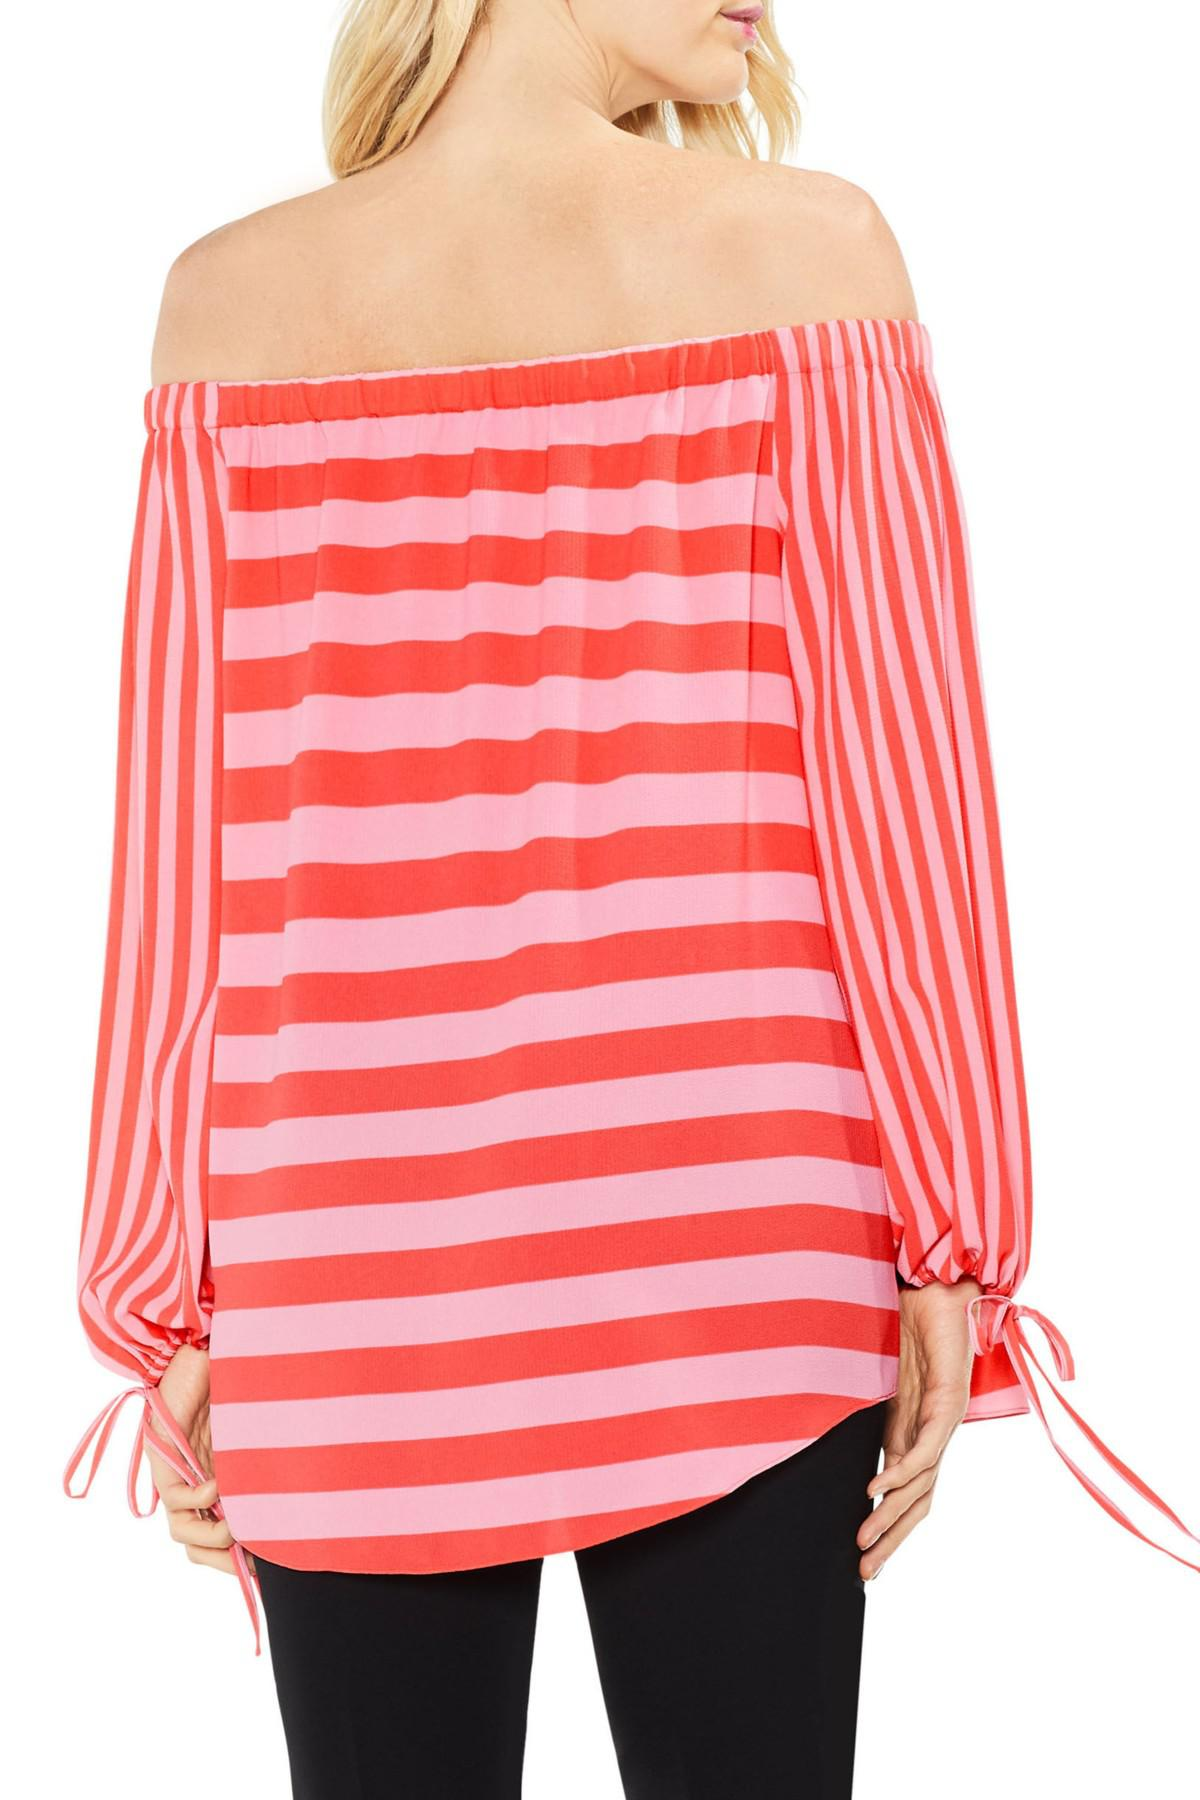 42e603a951e46 Vince Camuto - Red Off The Shoulder Even Stripe Bubble Sleeve Top - Lyst.  View fullscreen